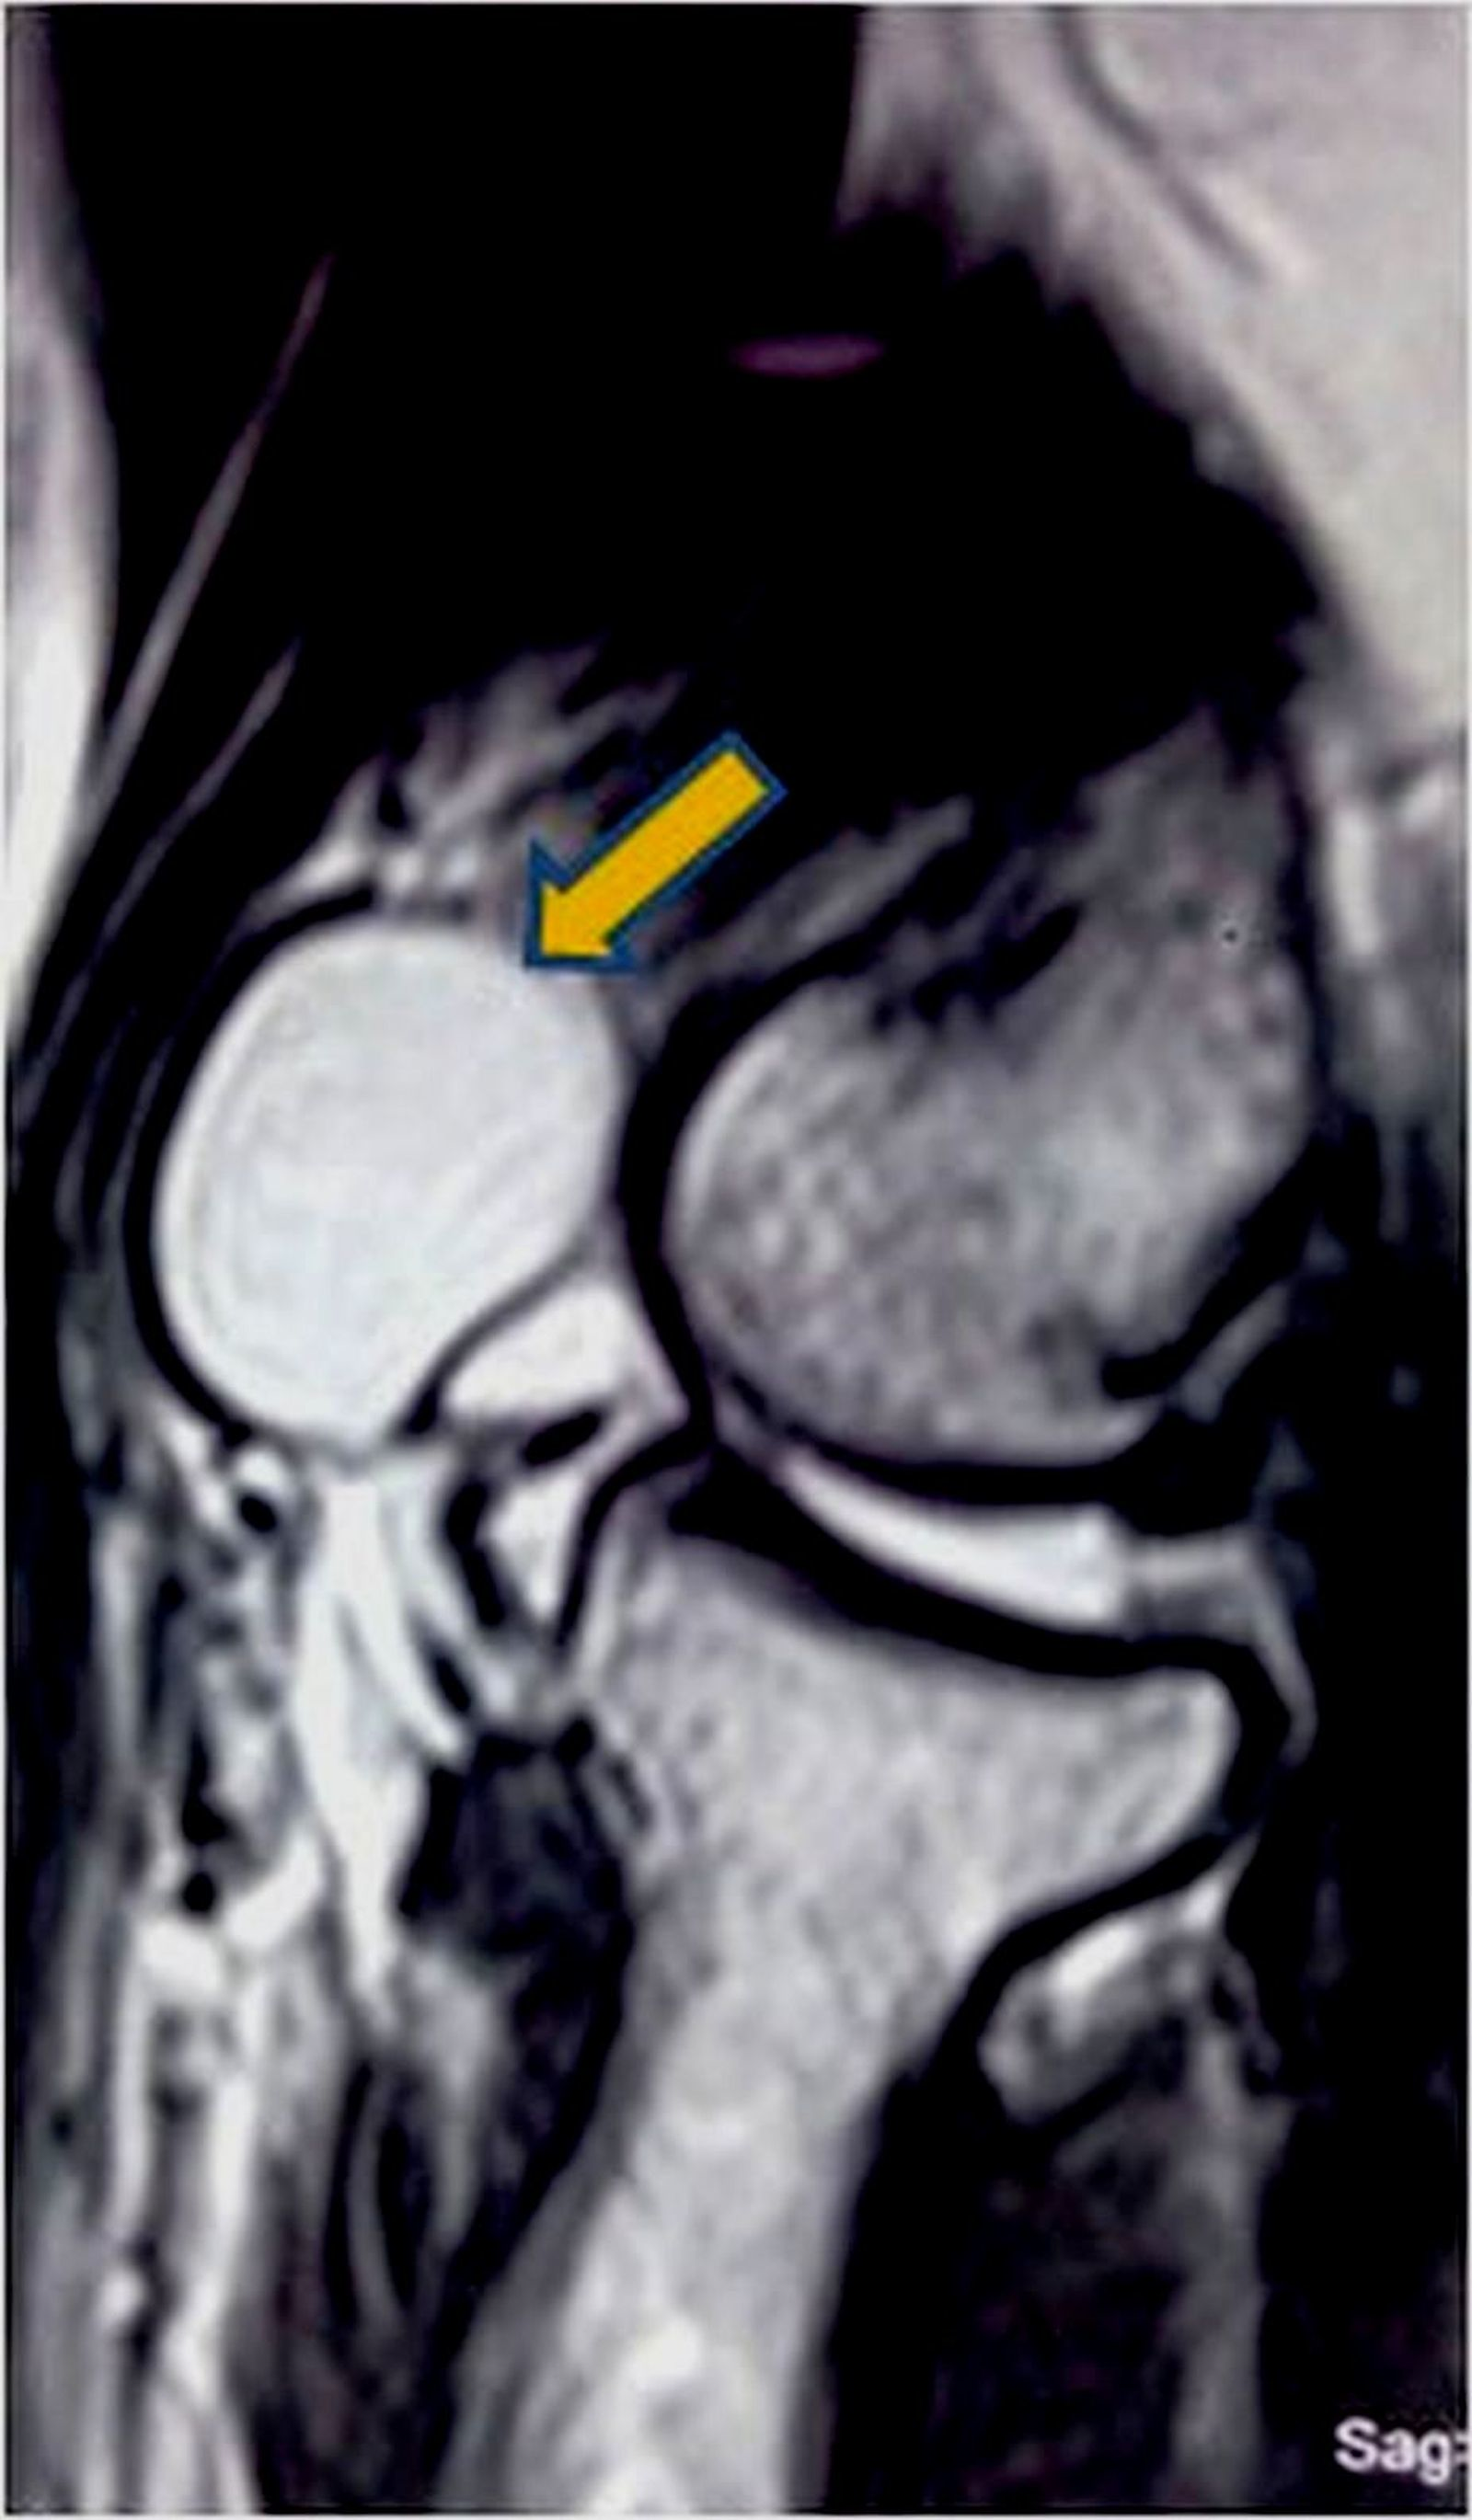 Cureus | A Rare Presentation of Ganglion Cyst of the Elbow